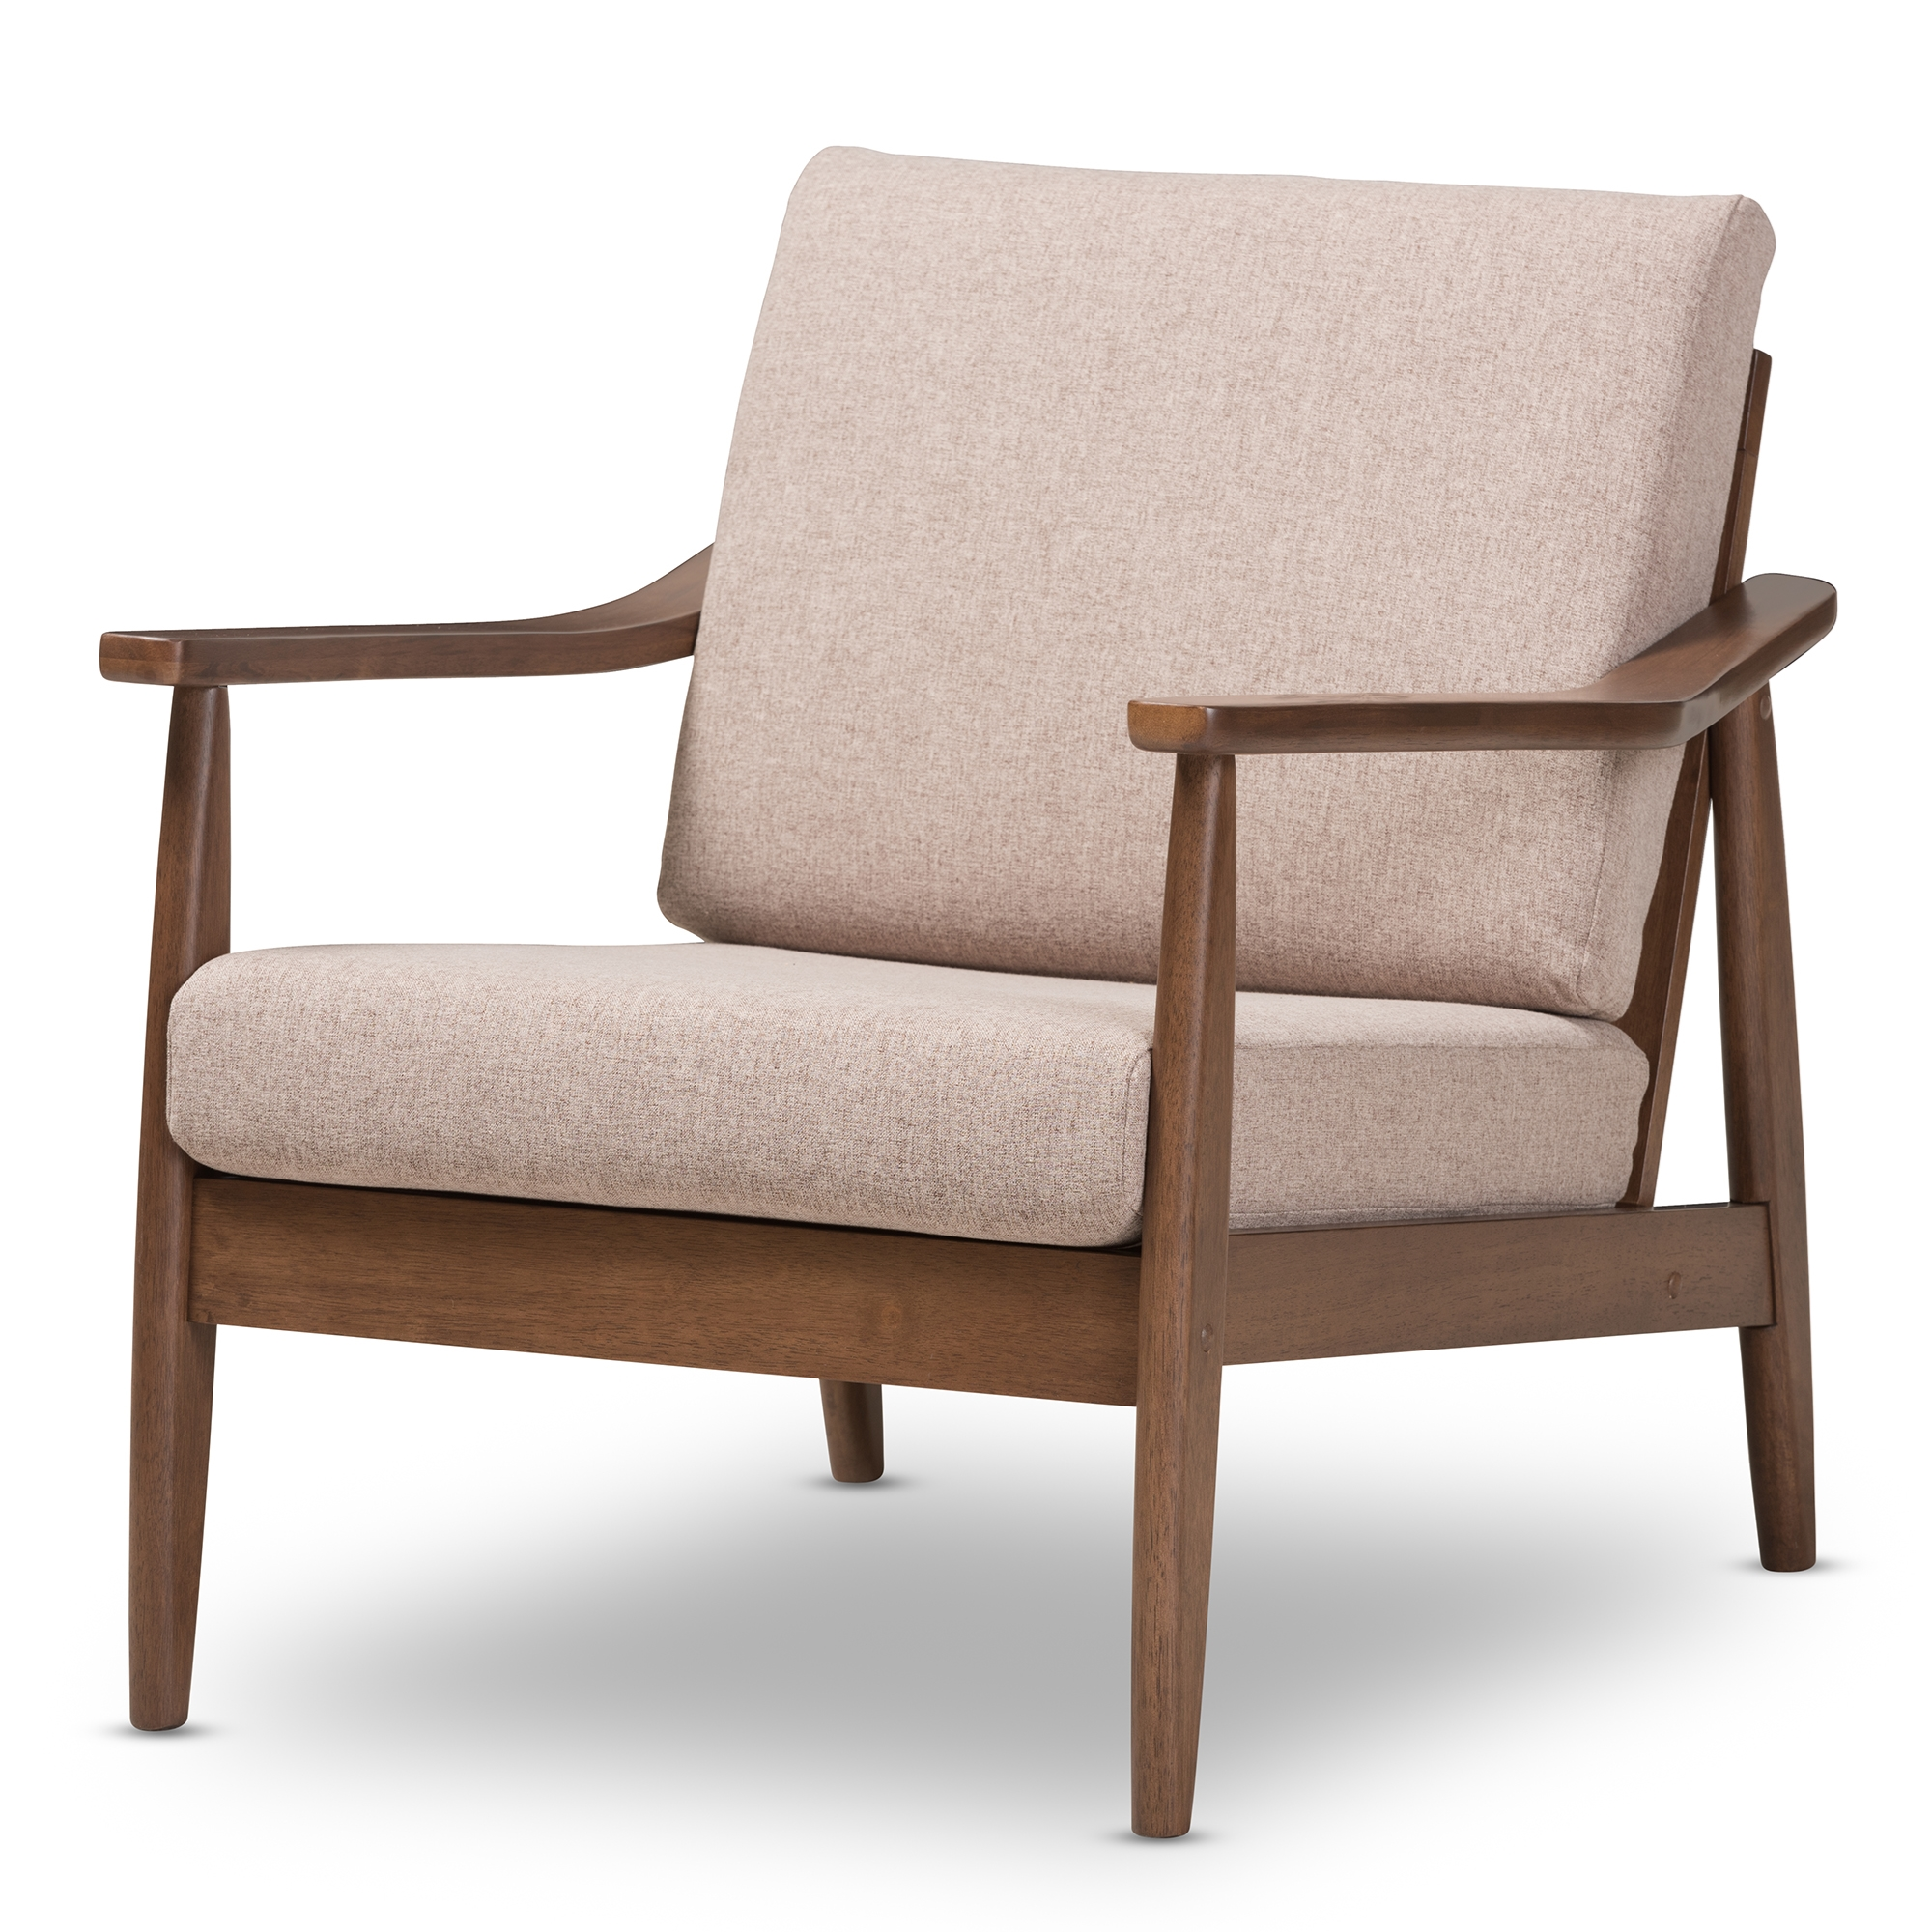 baxton studio venza midcentury modern walnut wood light brown fabric upholstered lounge chair affordable